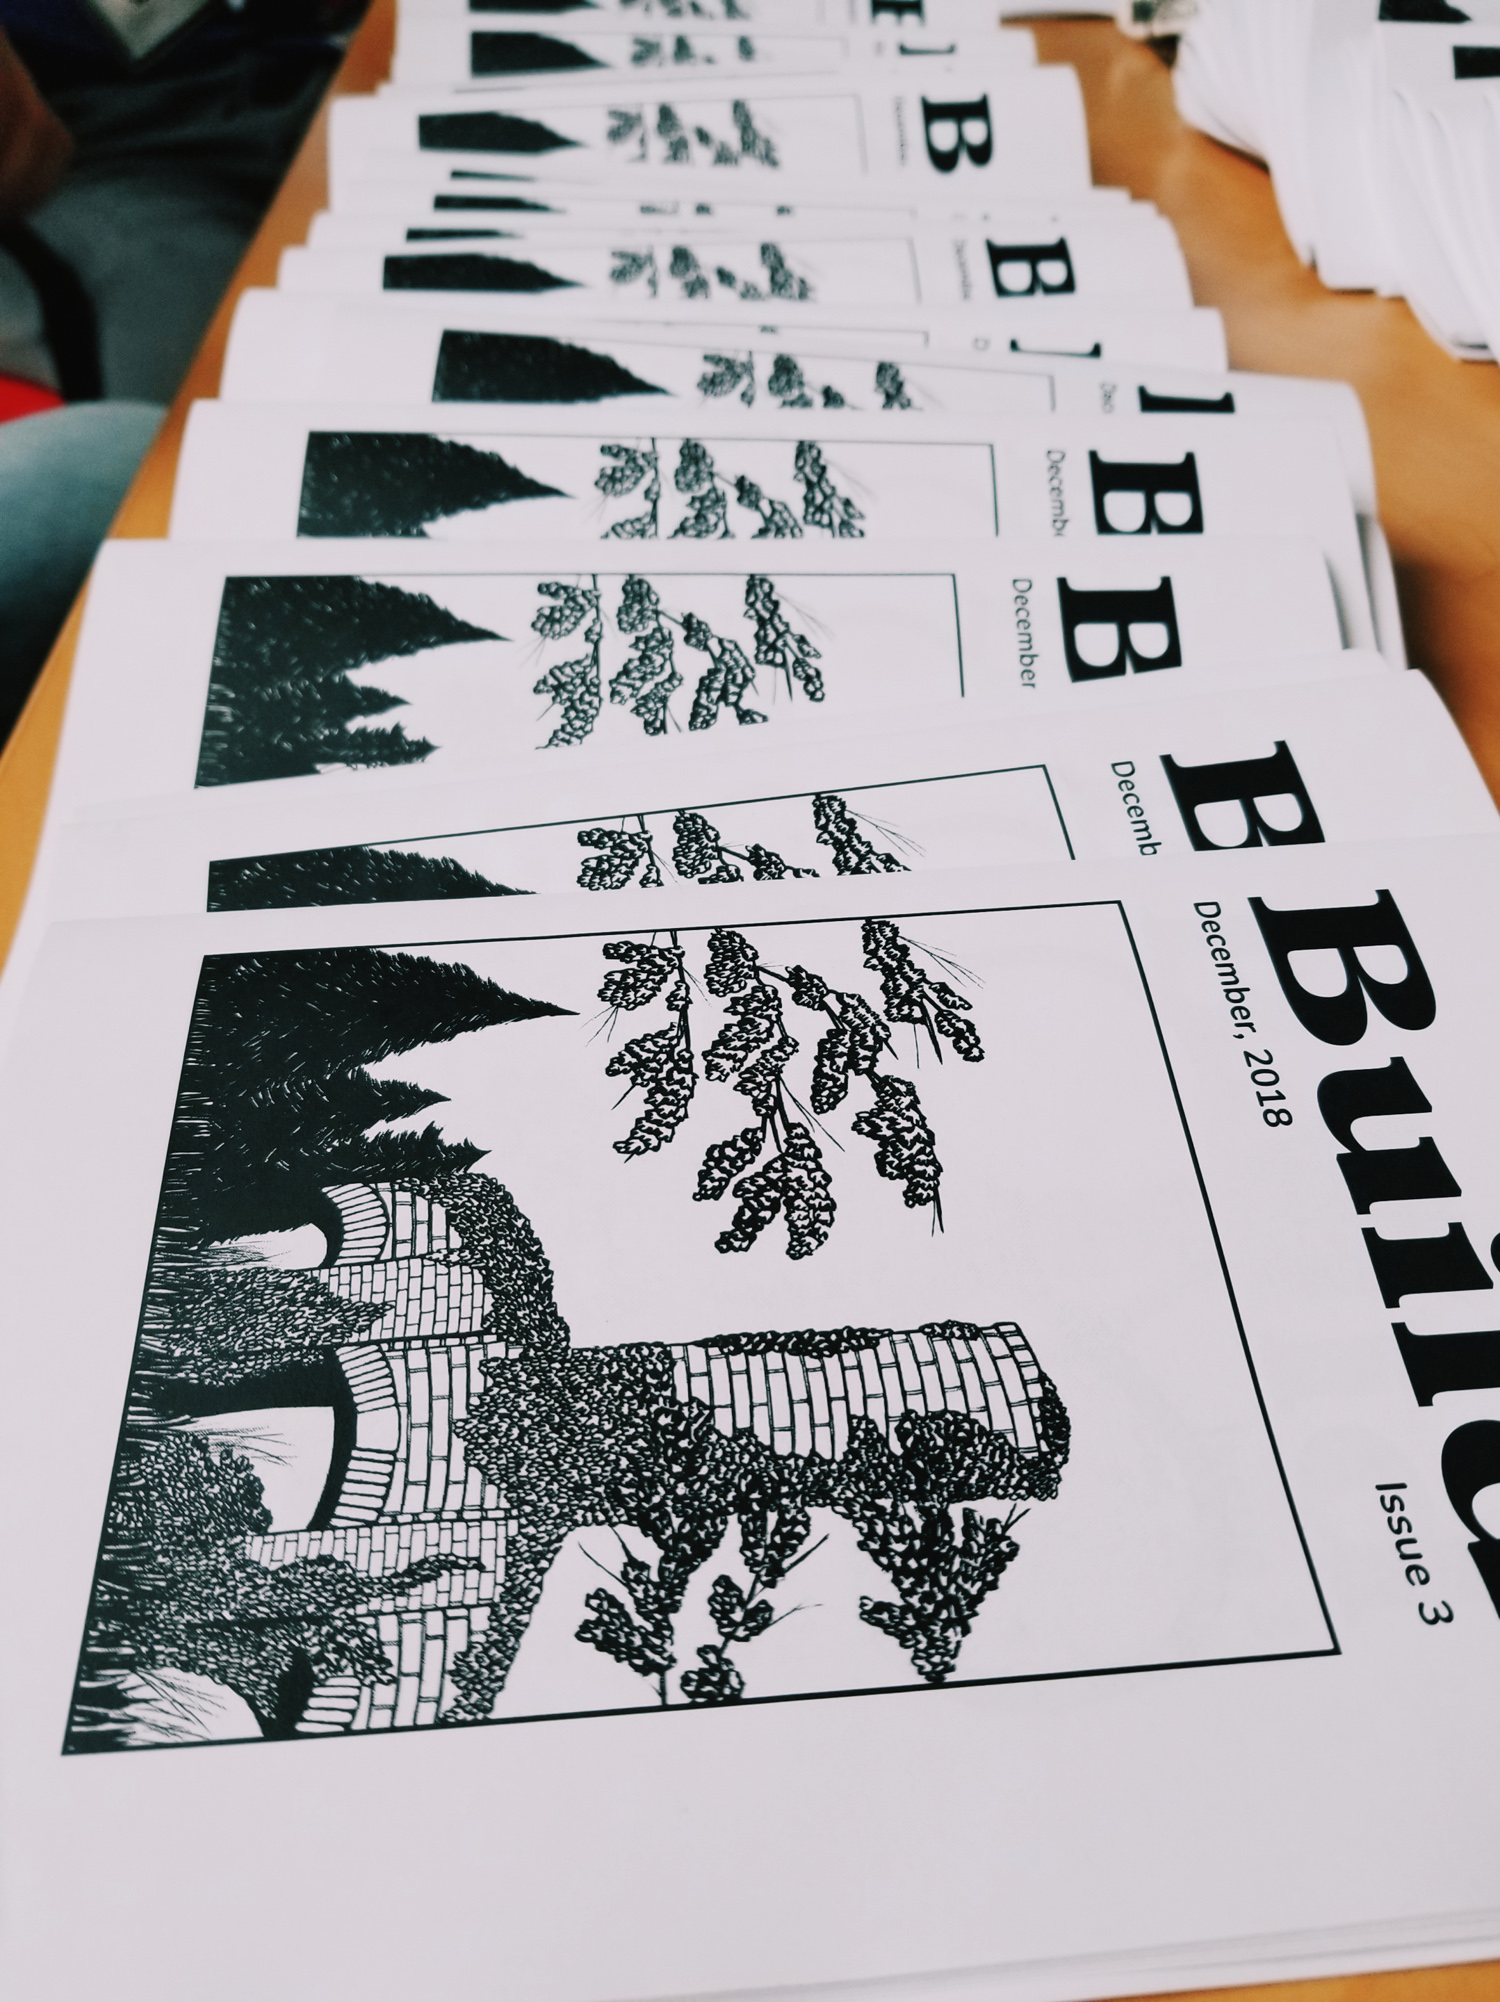 Ended the year helping assemble these zines